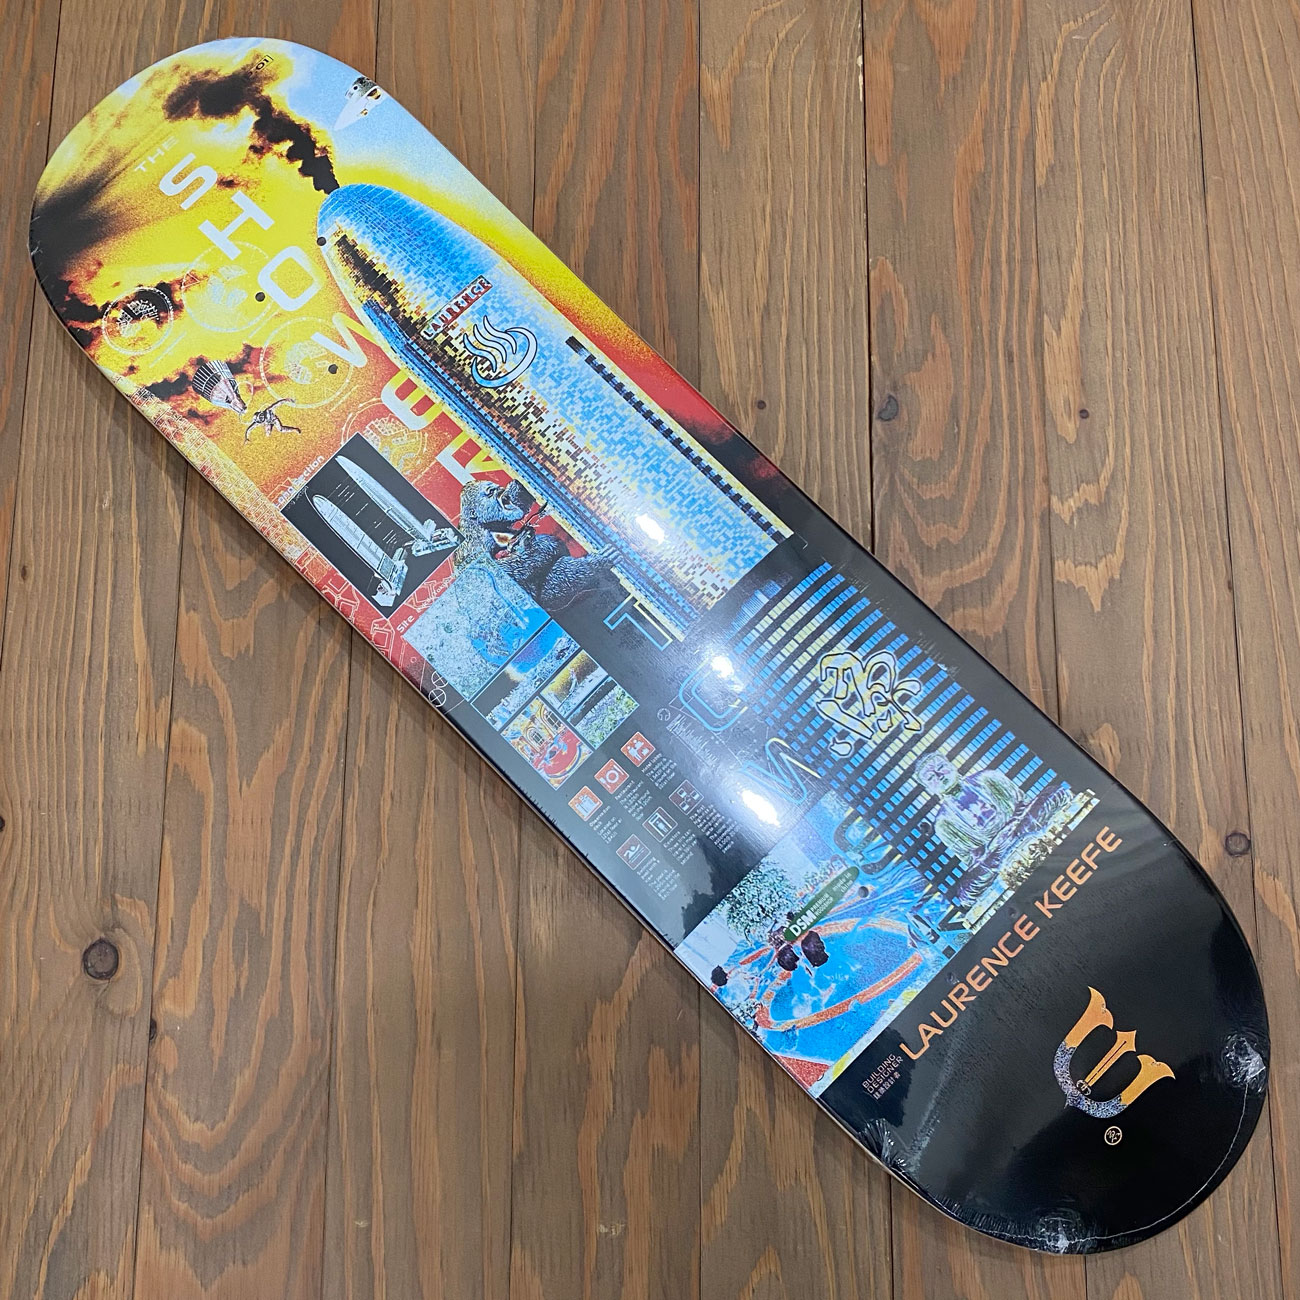 EVISEN ADMATIC SERIES LAURENCE KEEFE DECK 8.06/8.25inch